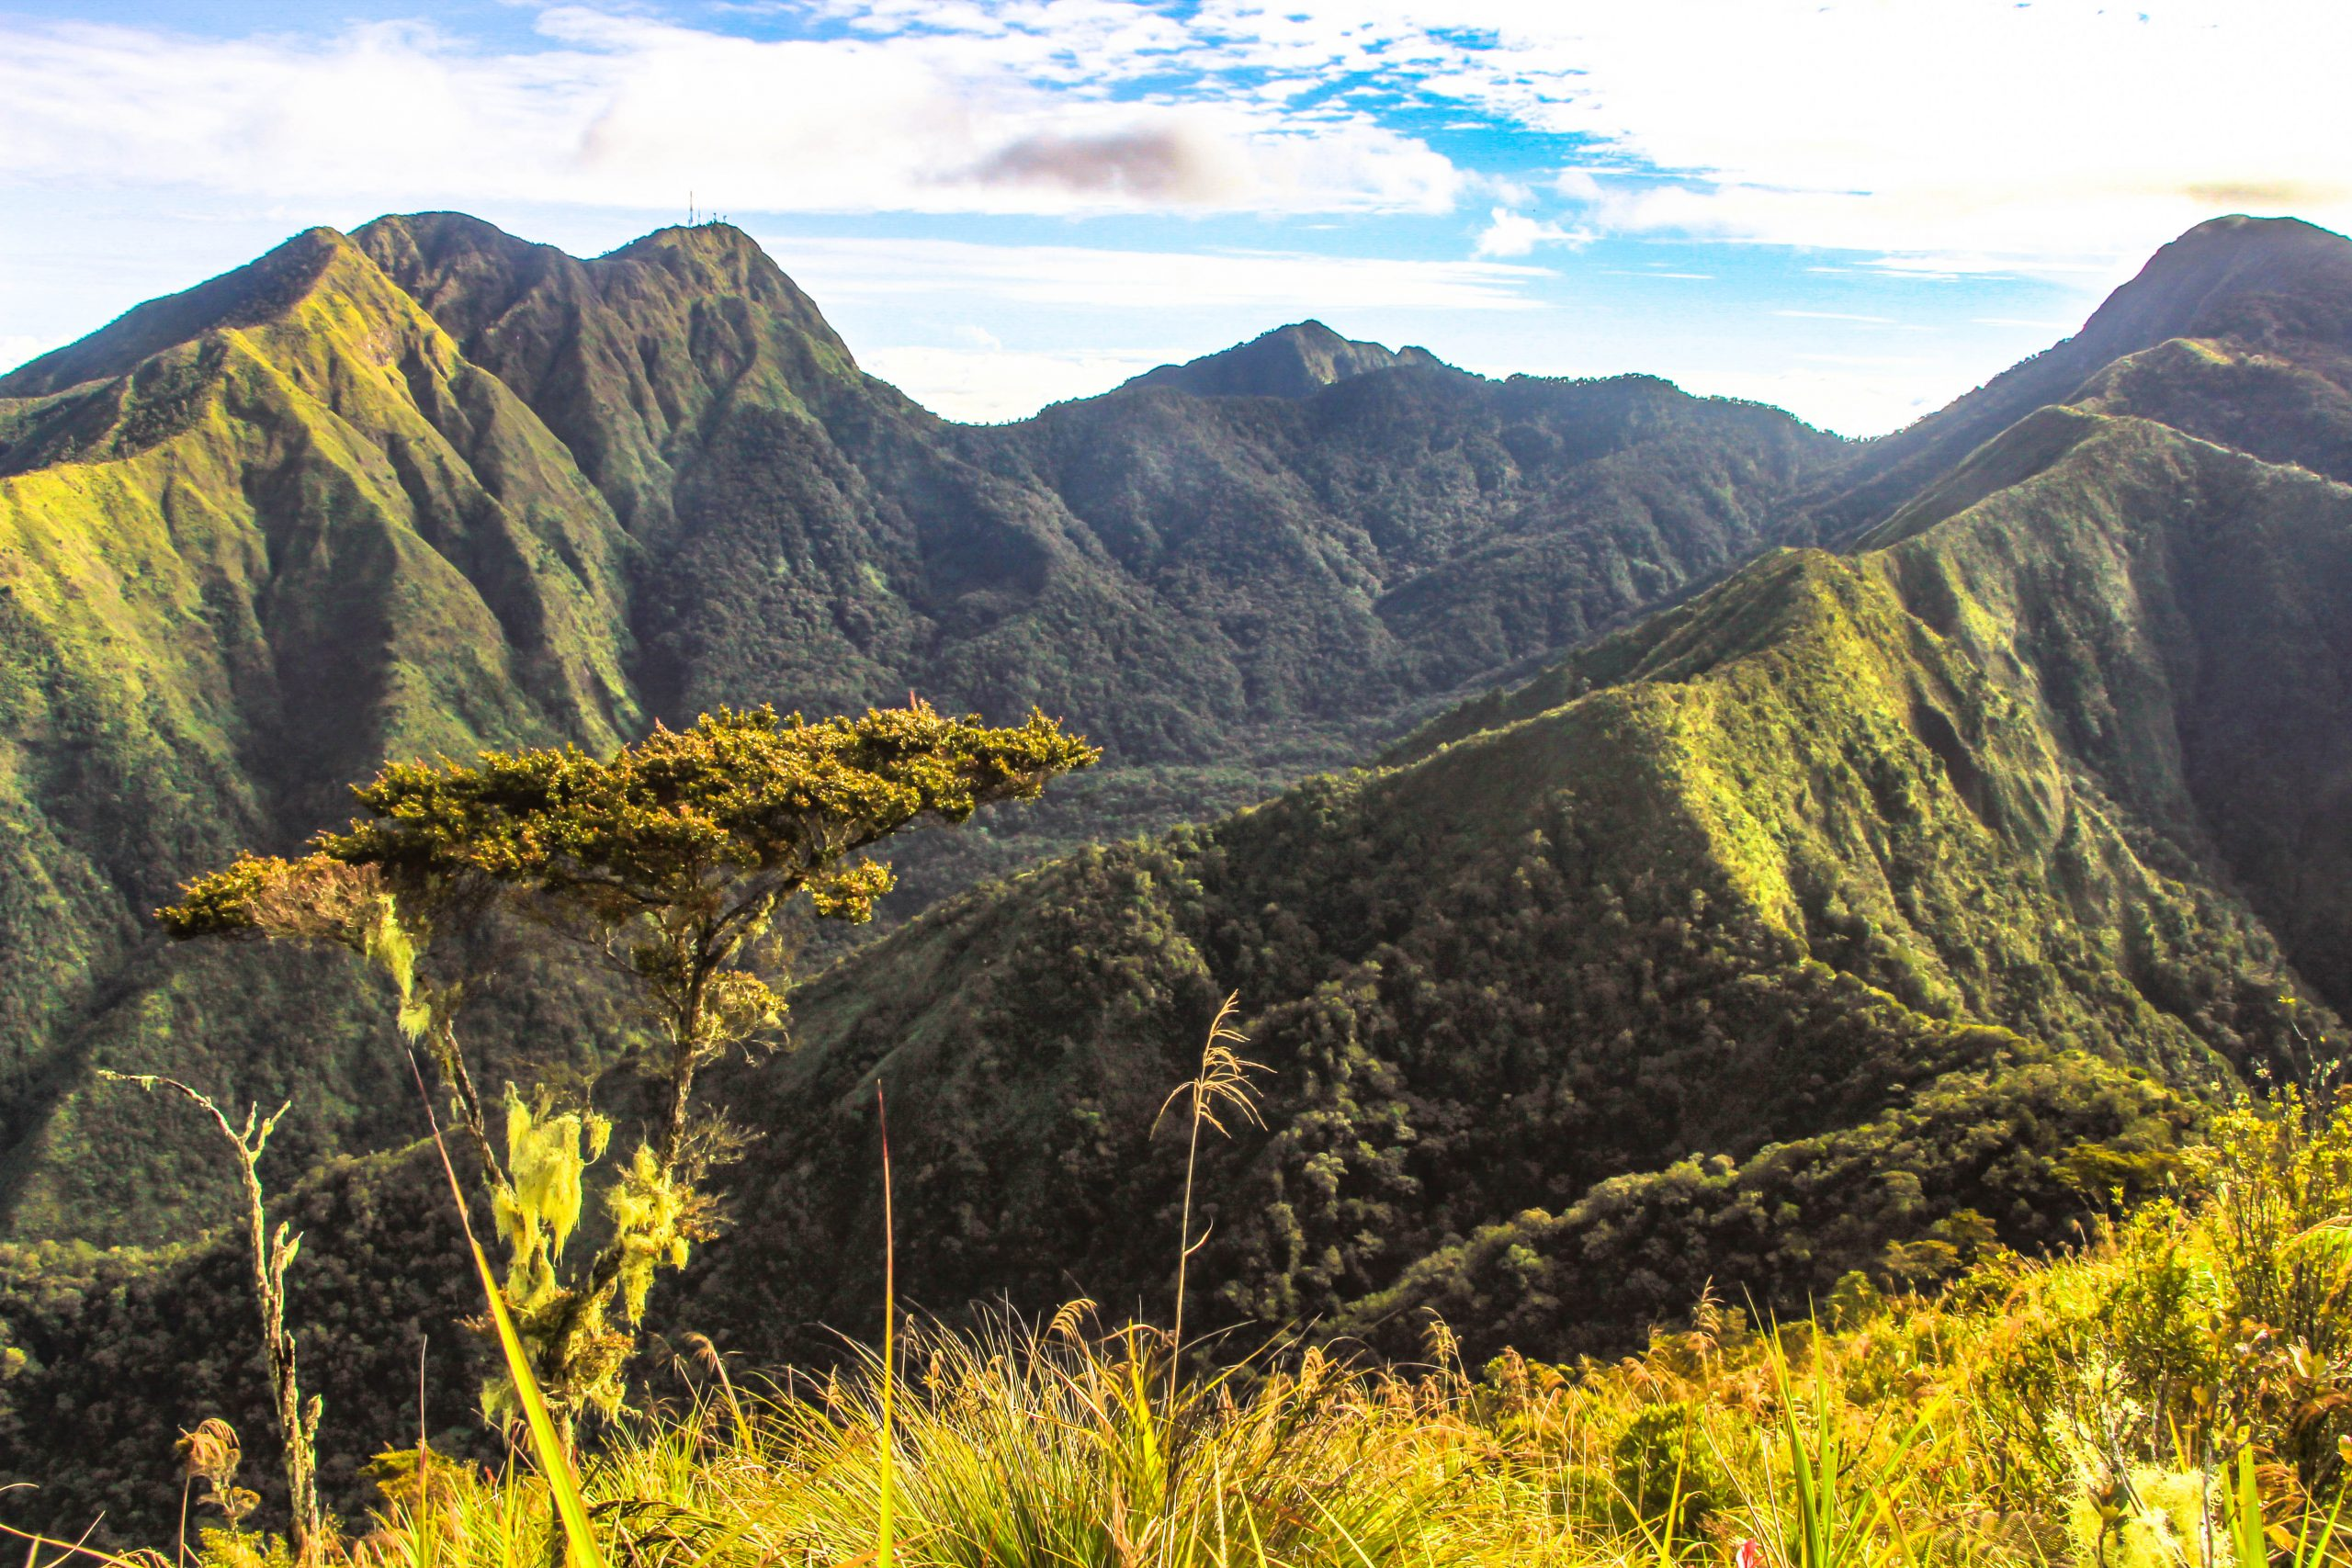 A mountain range with steep green slopes and jagged peaks (indeed the Kitanglad Mountain Range, which encompasses several of the tallest mountains in the Philippines)